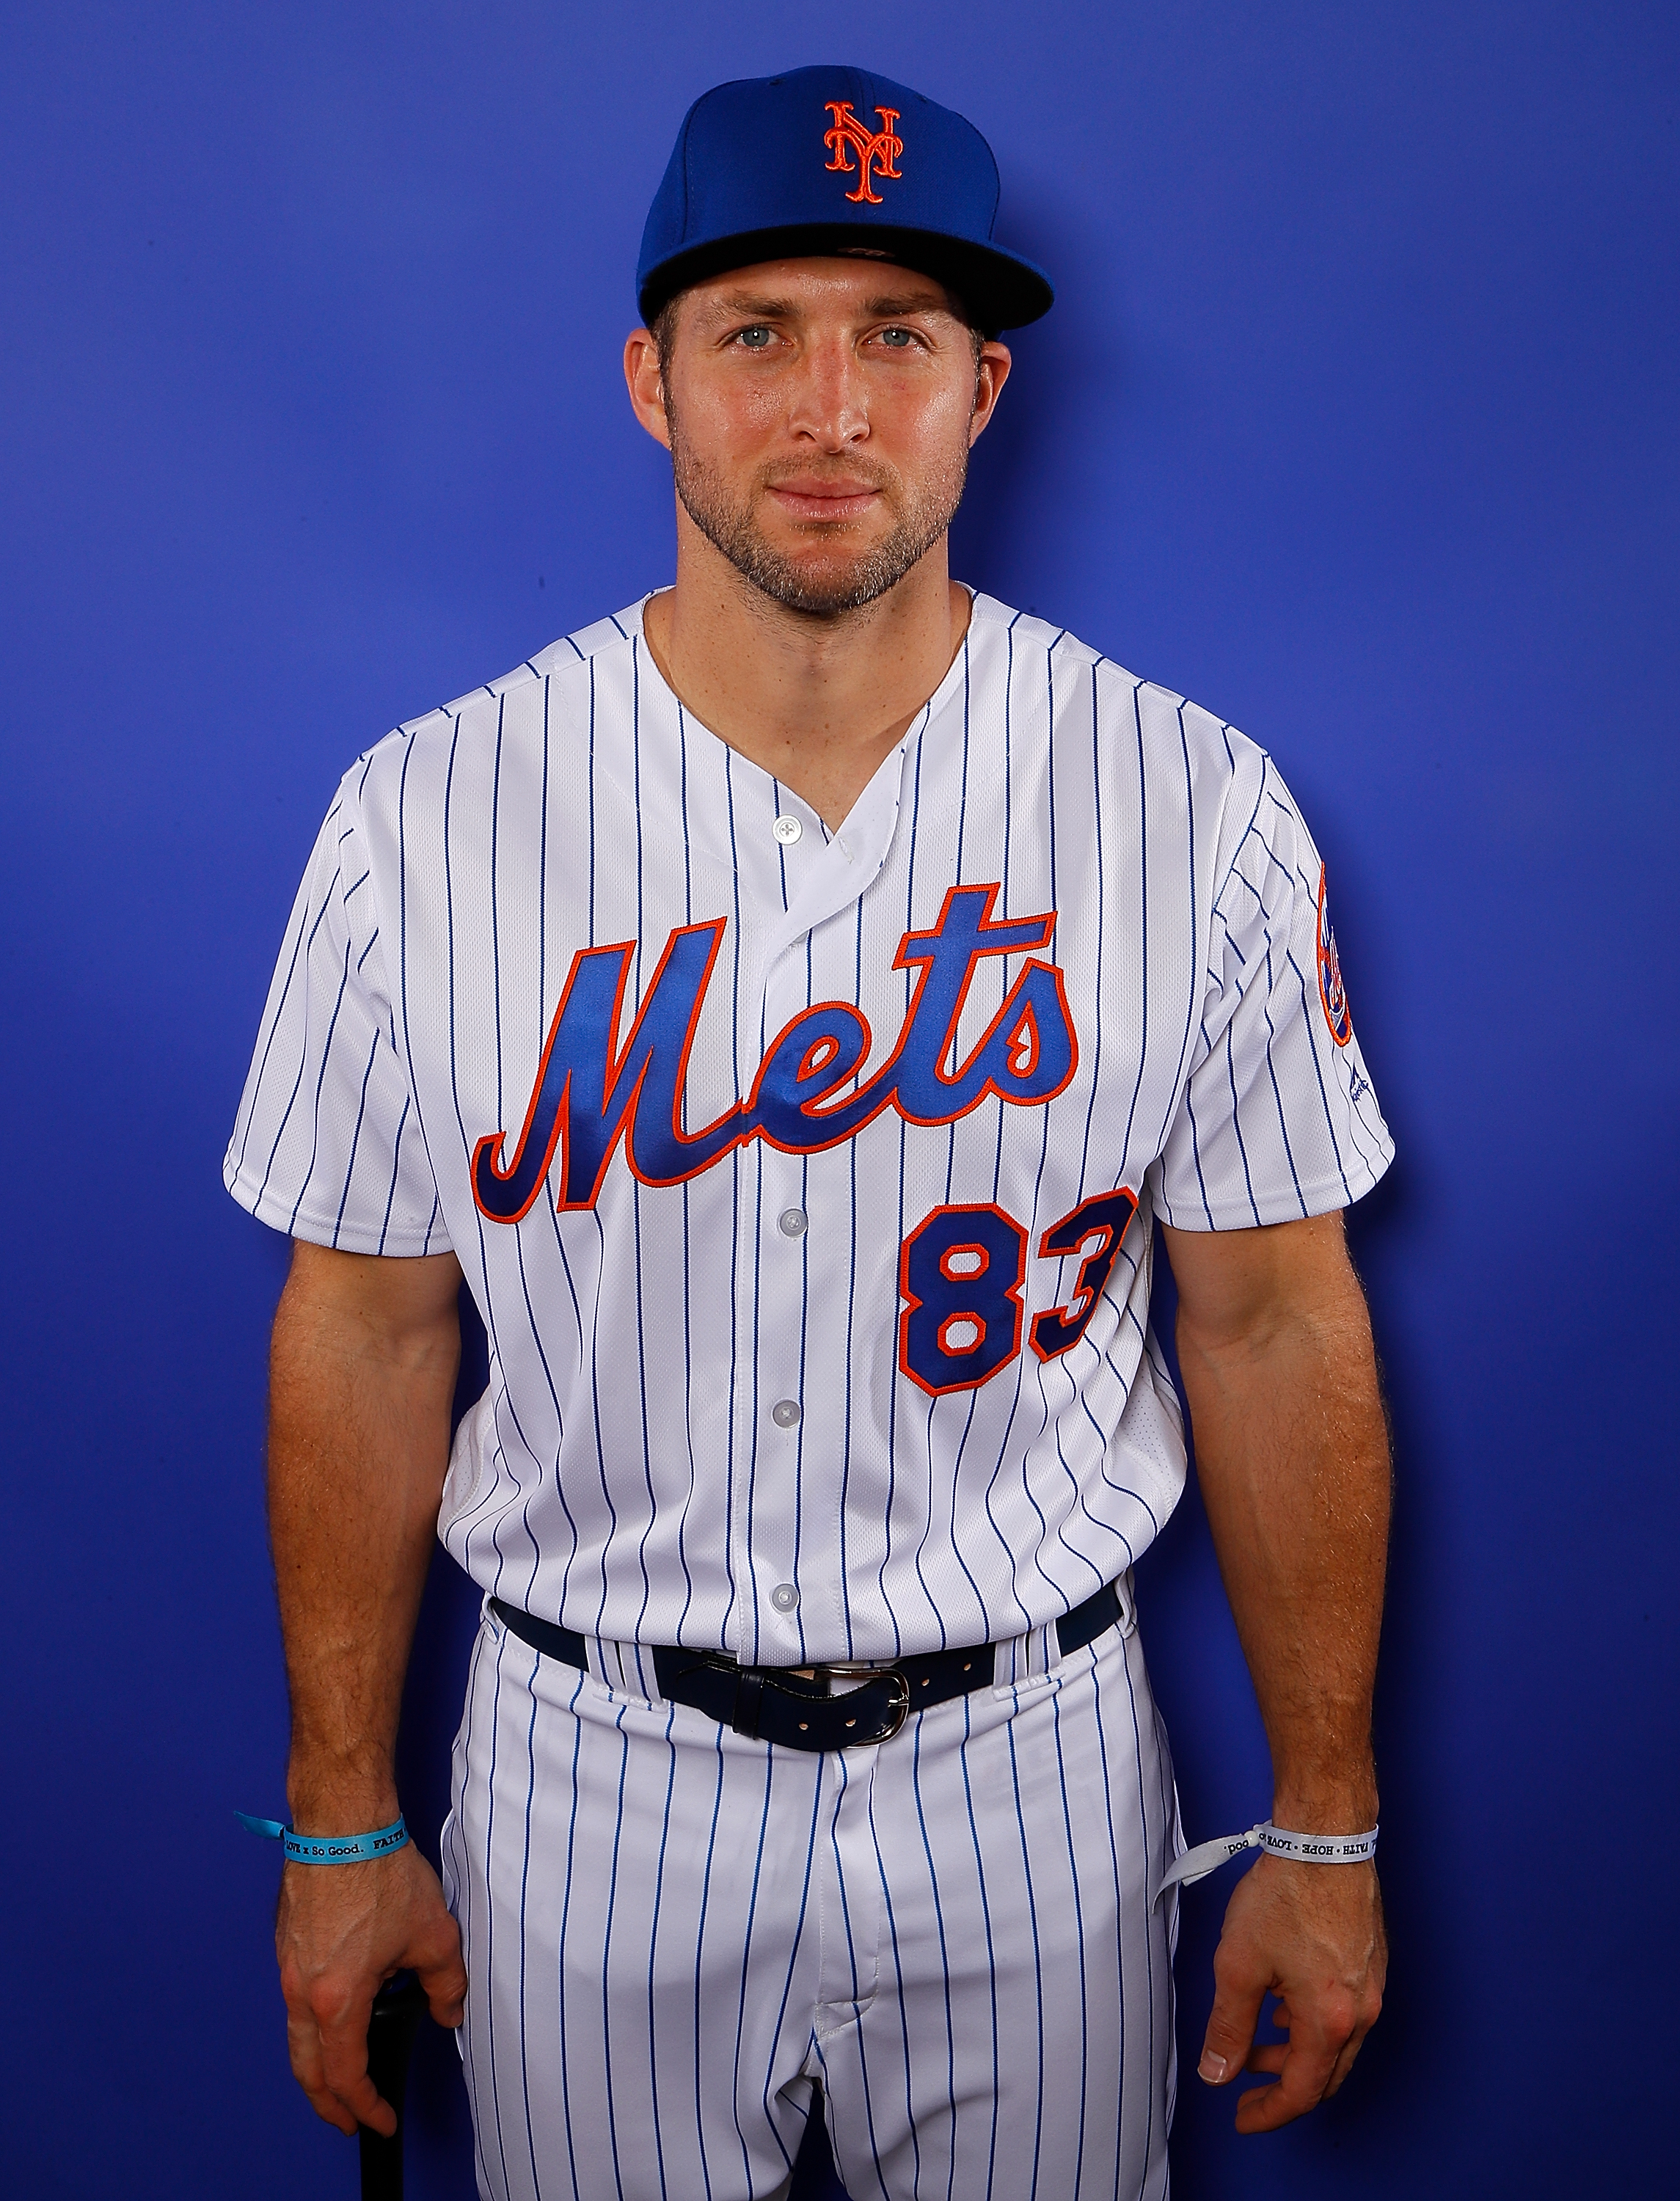 Tim Tebow #83 of the New York Mets poses for a photo during photo days at First Data Field on February 21, 2018 in Port St. Lucie, Florida. (Getty Images)